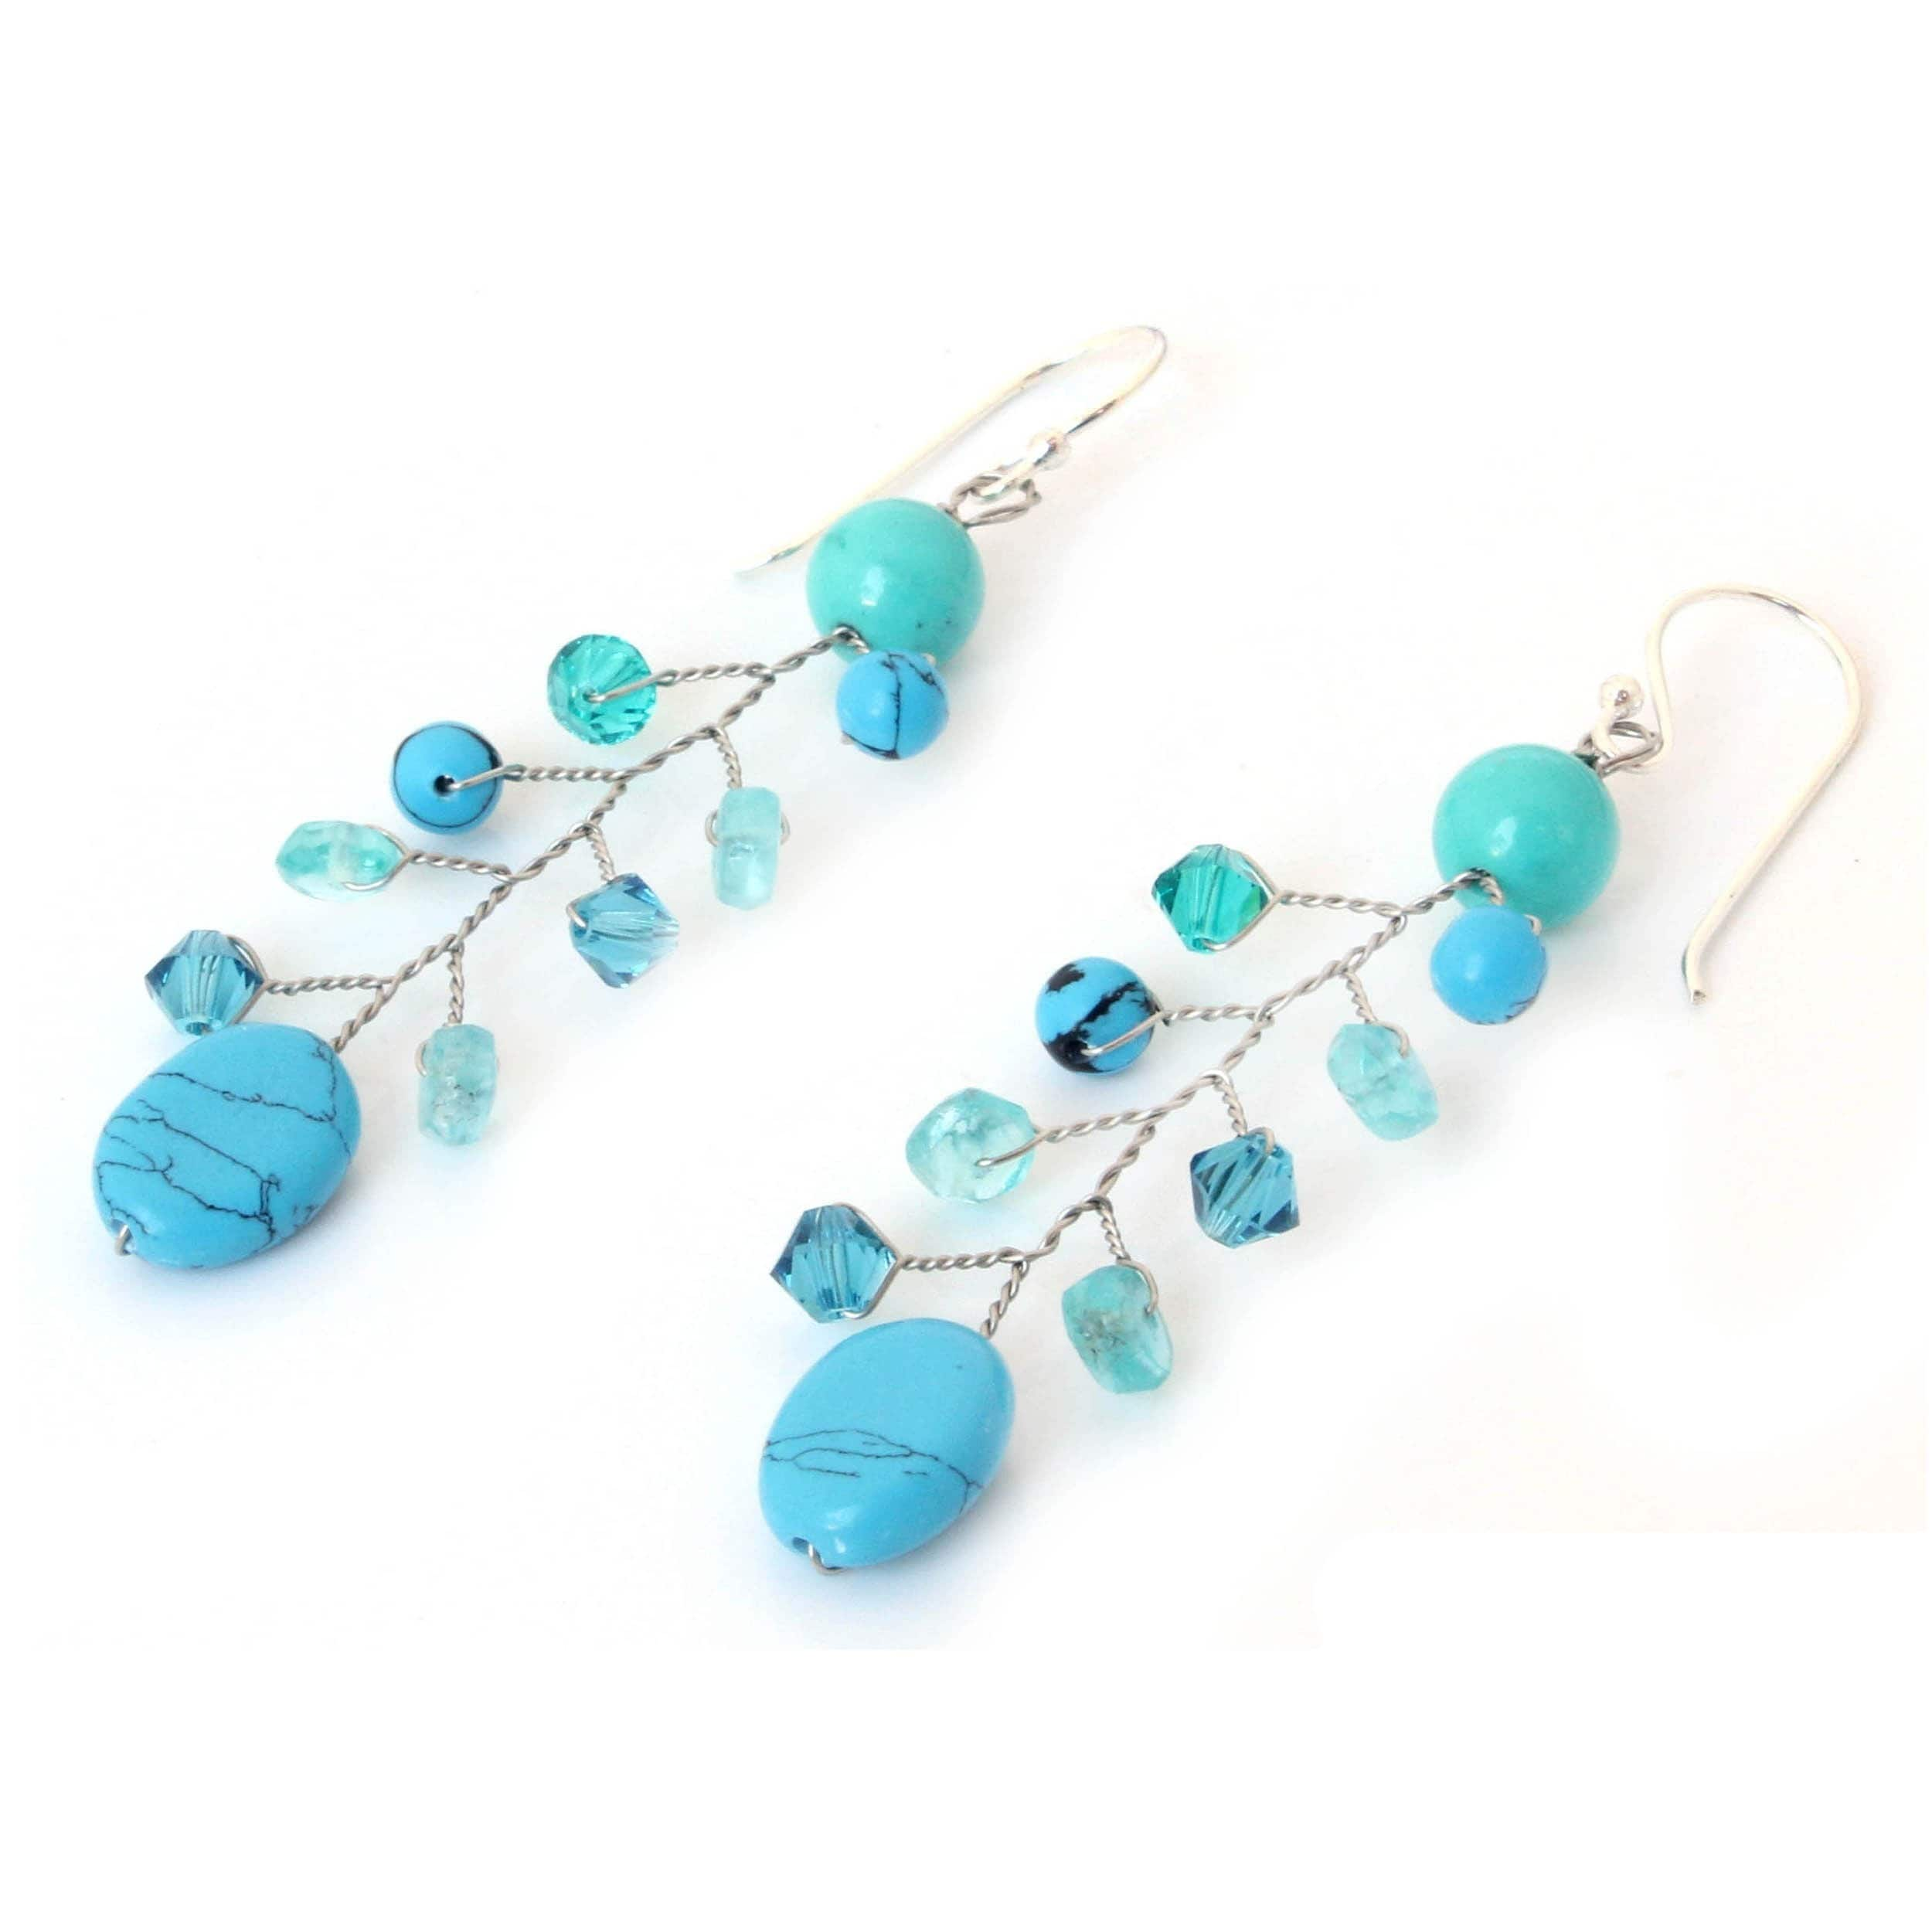 rare design a and luxury in sky blue of earrings the falls smithsonite statement one apatite kind cluster when silver